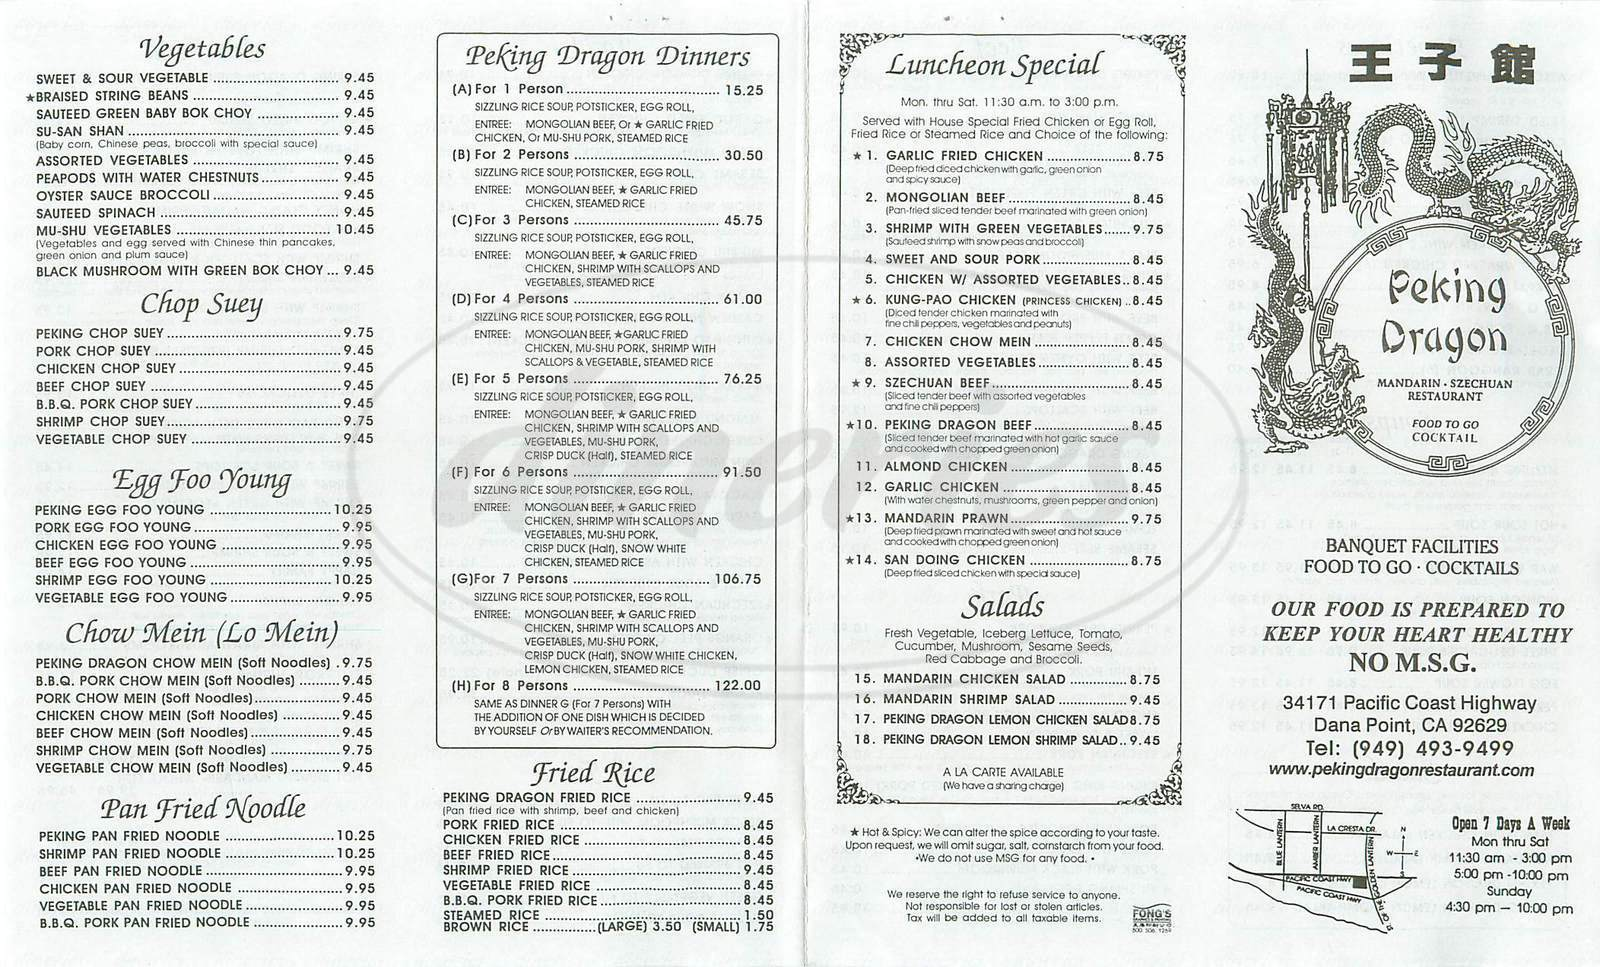 menu for Peking Dragon Restaurant